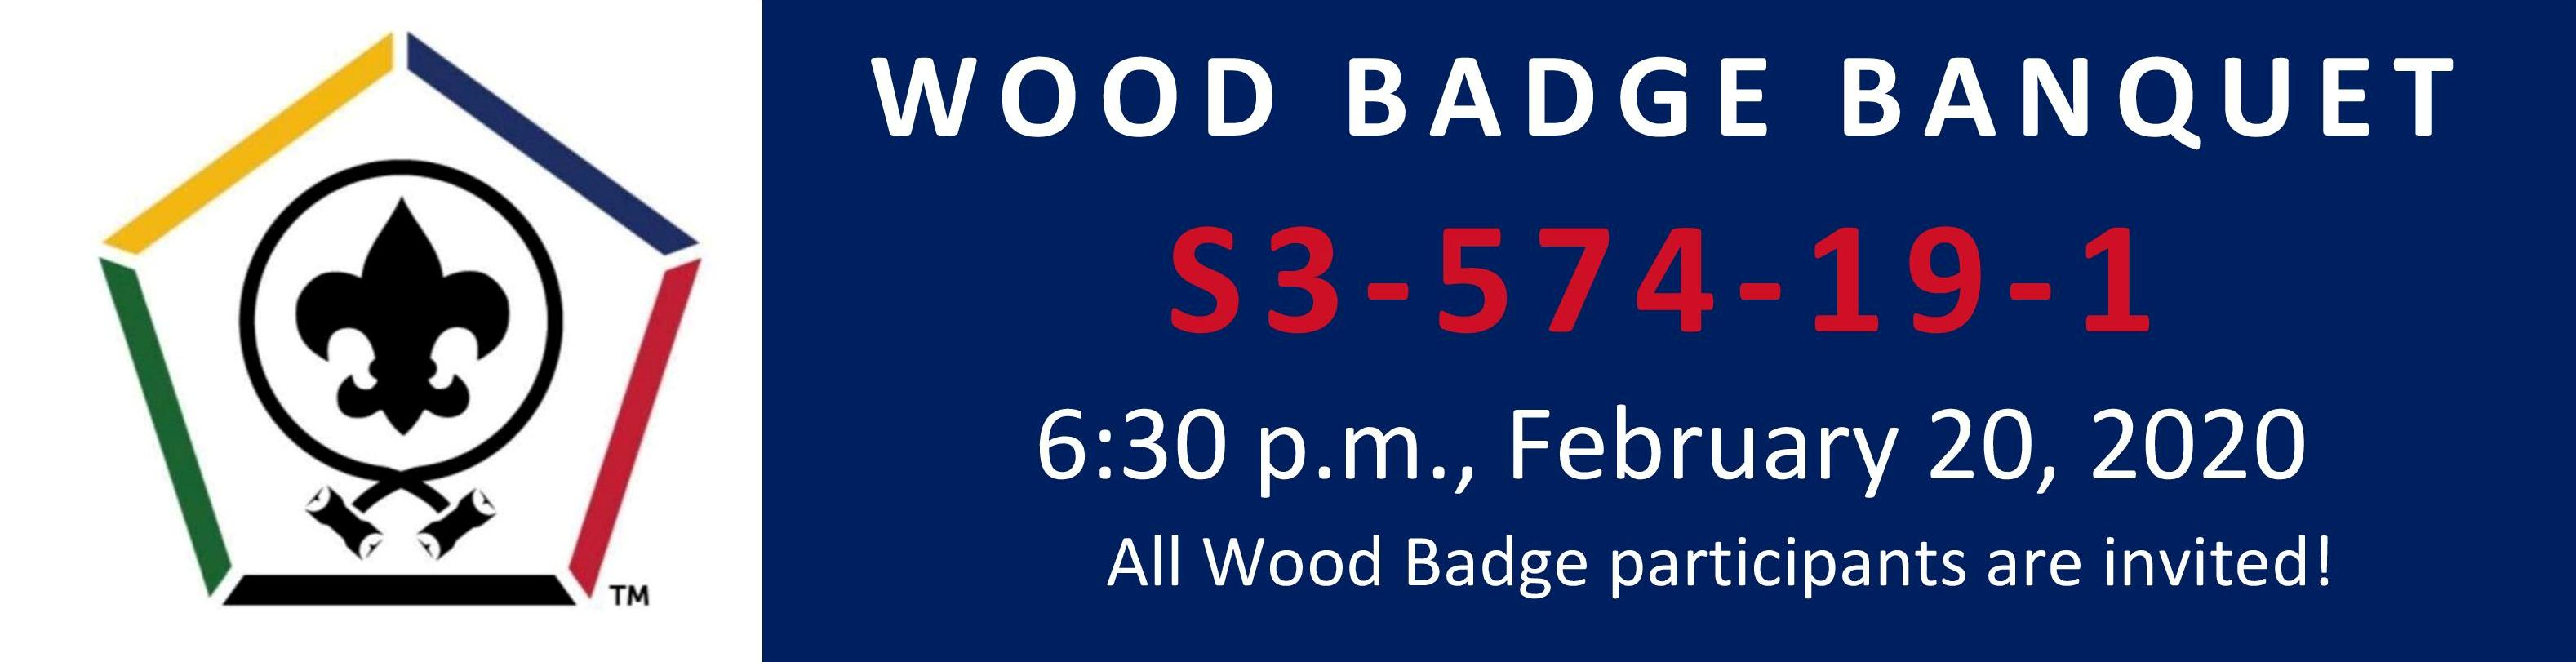 Wood Badge Banquet